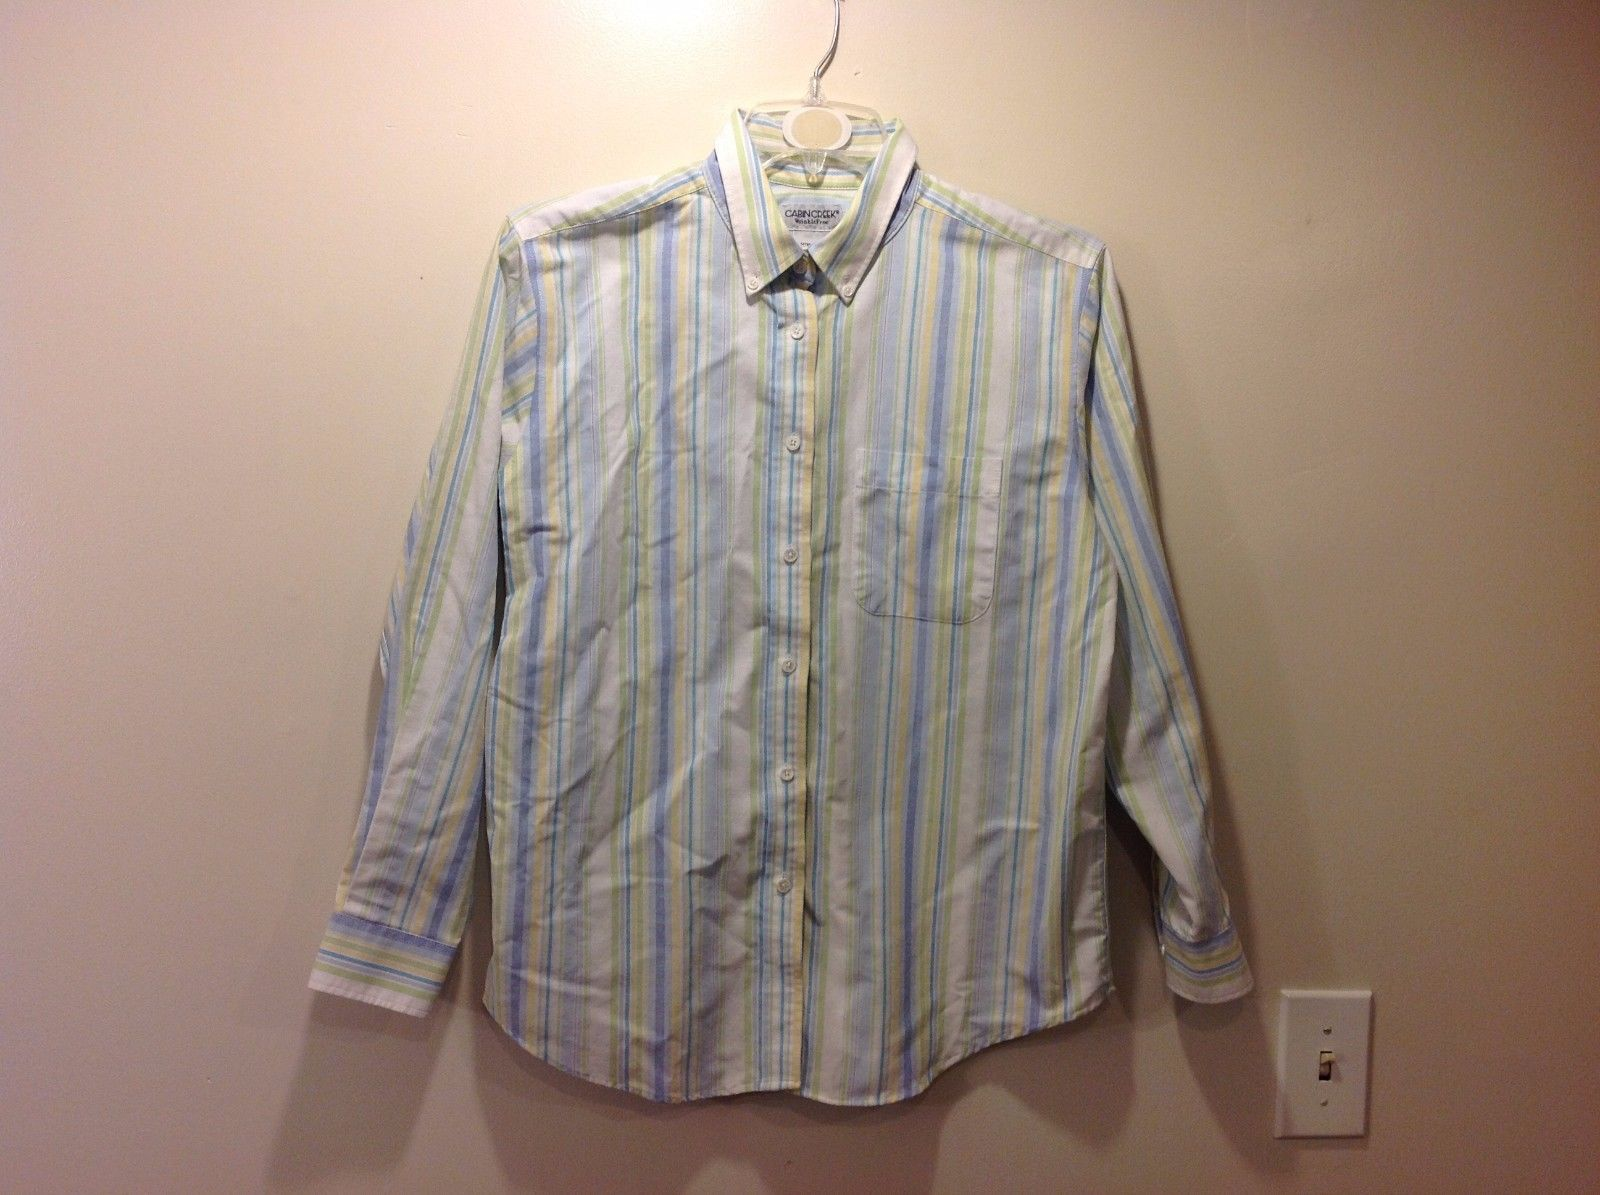 Cabin Creek Spring Colored Vertically Striped Button Up Collared Shirt Sz 12